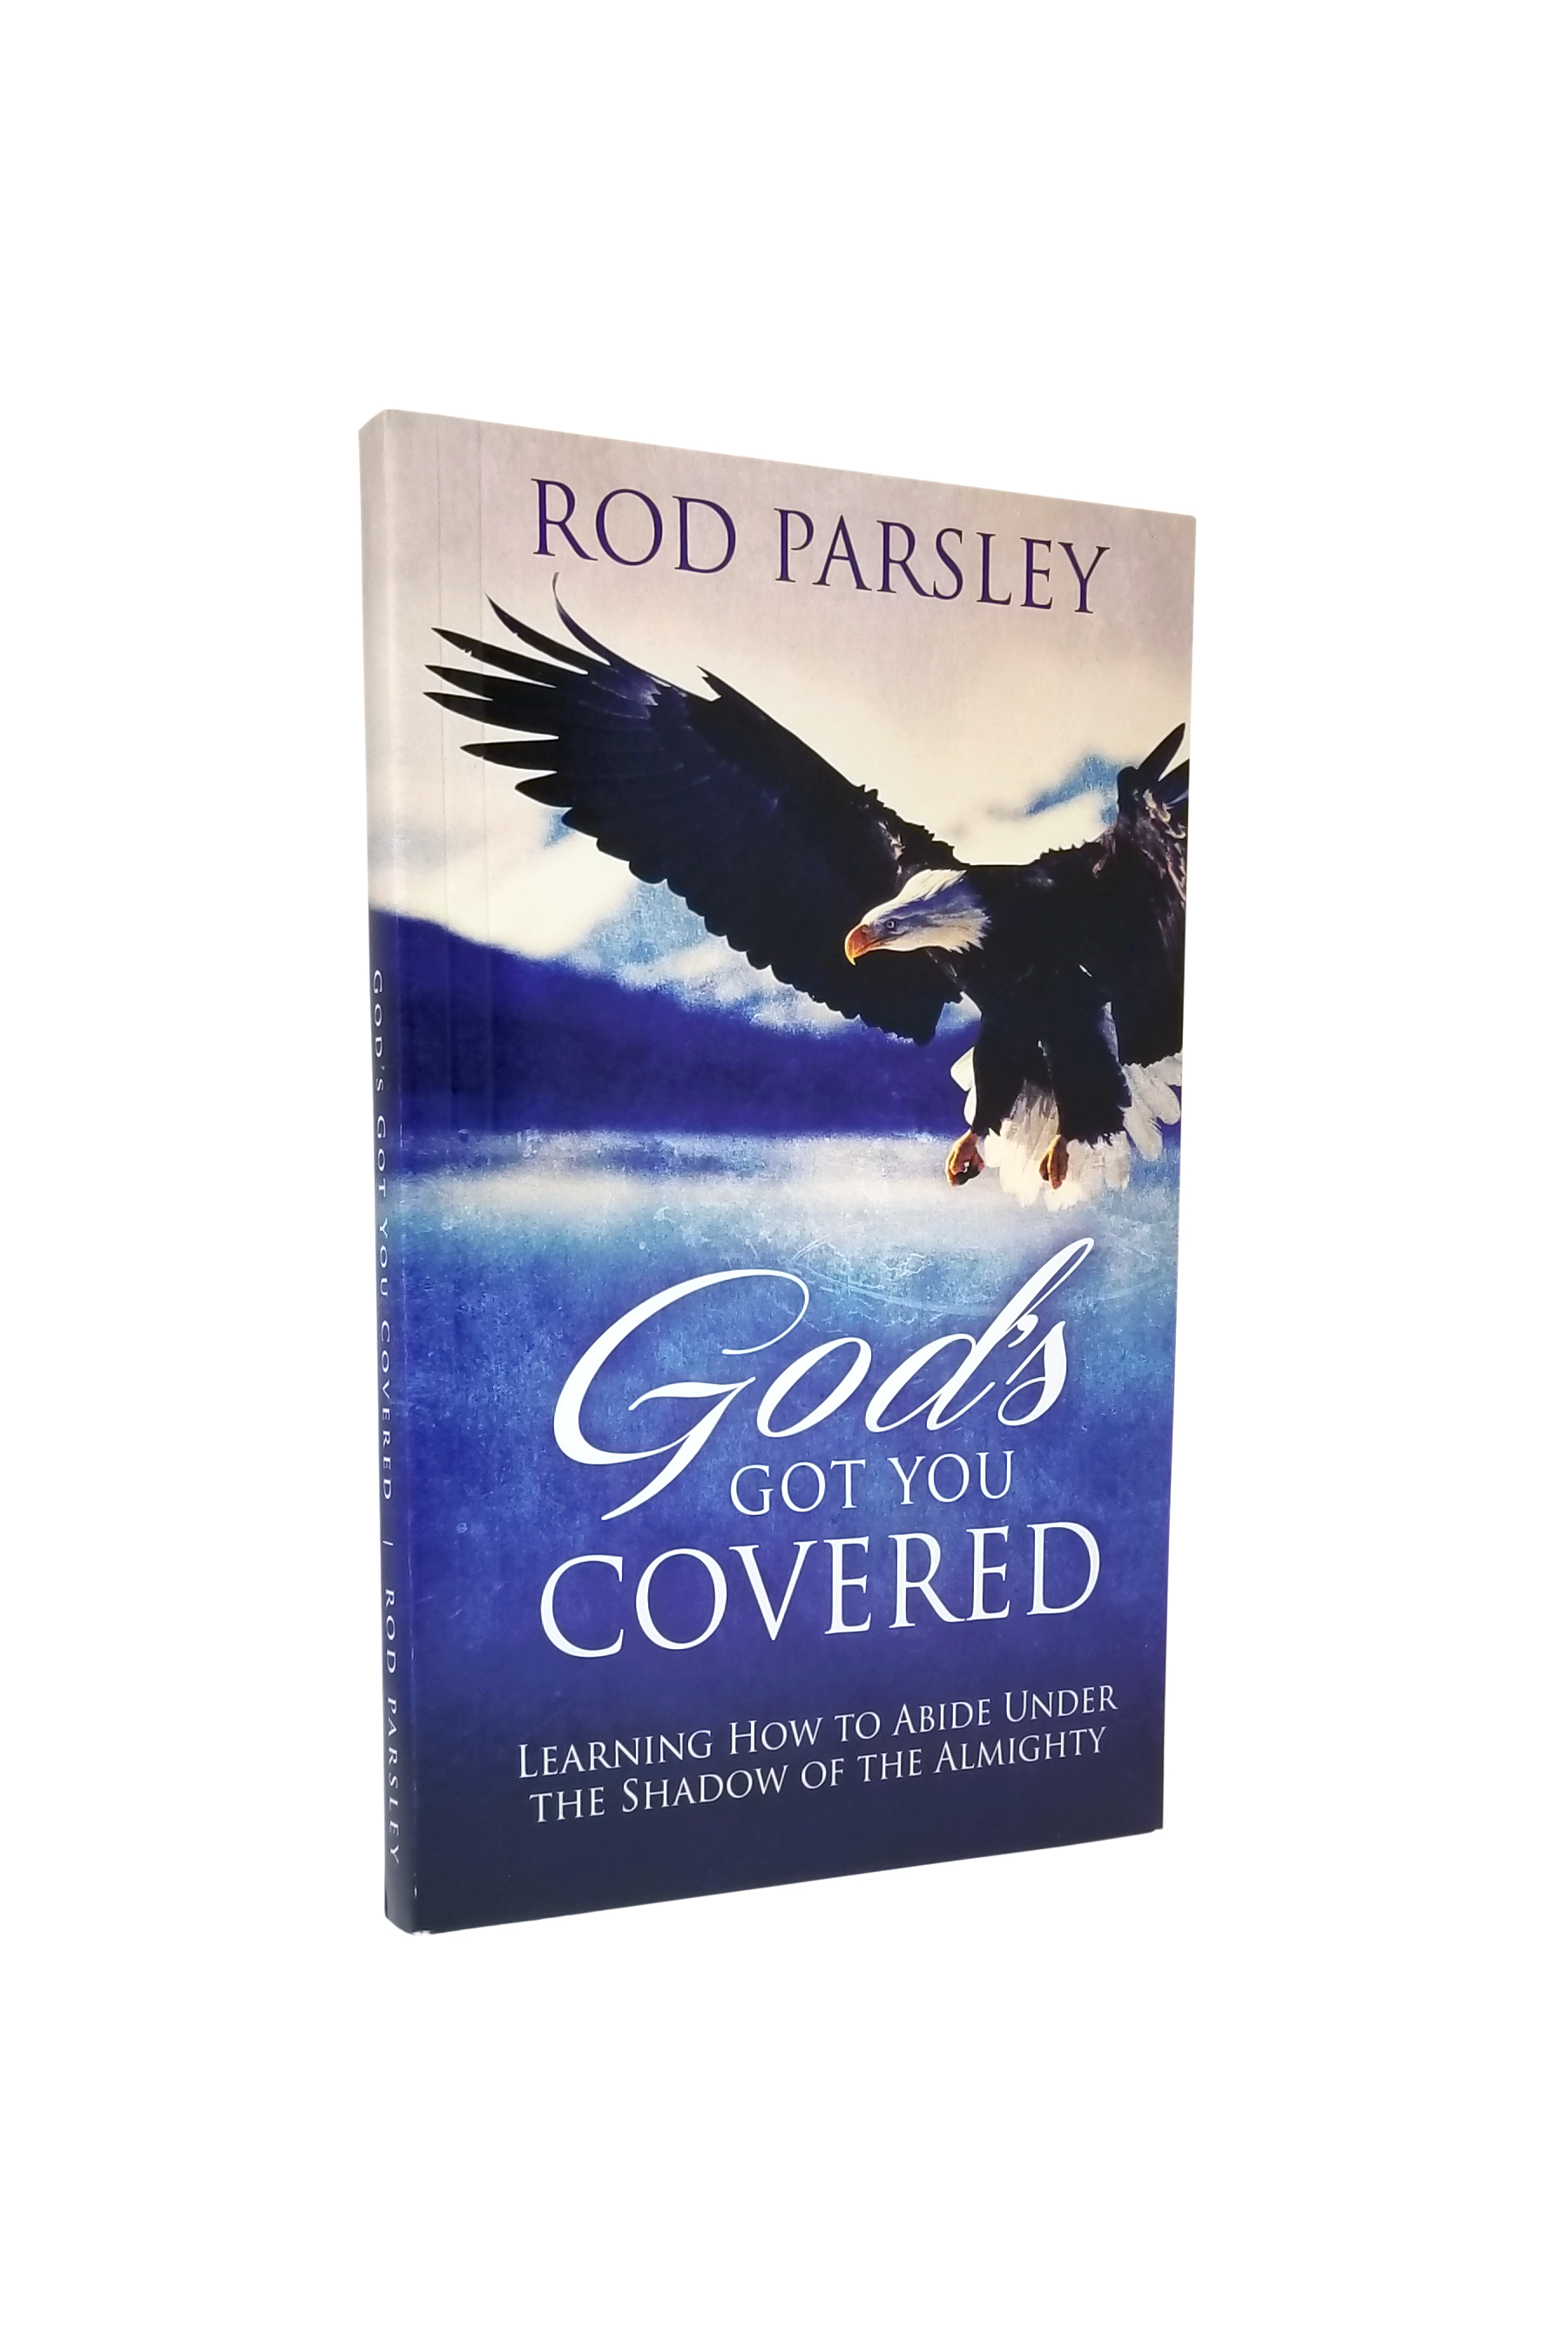 God's Got You Covered - Learning how to abide under the shadow of the Almighty - Rod Parsley | book